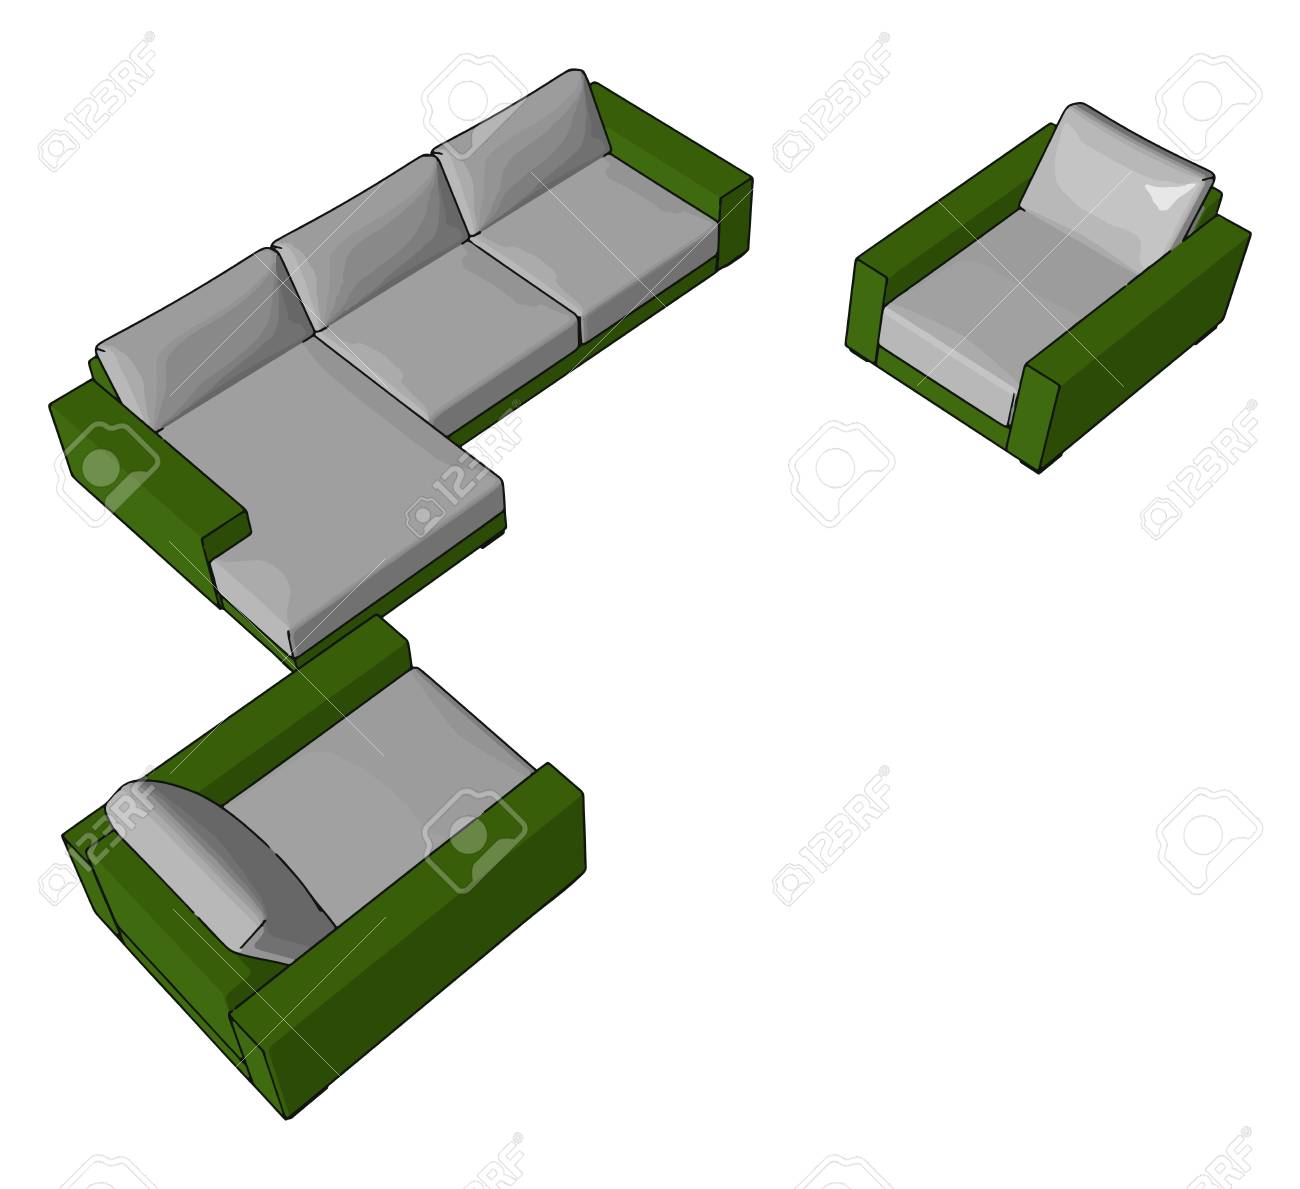 couch is a long seat often with a back and arms for sitting relaxing royalty free cliparts vectors and stock illustration image 123449461